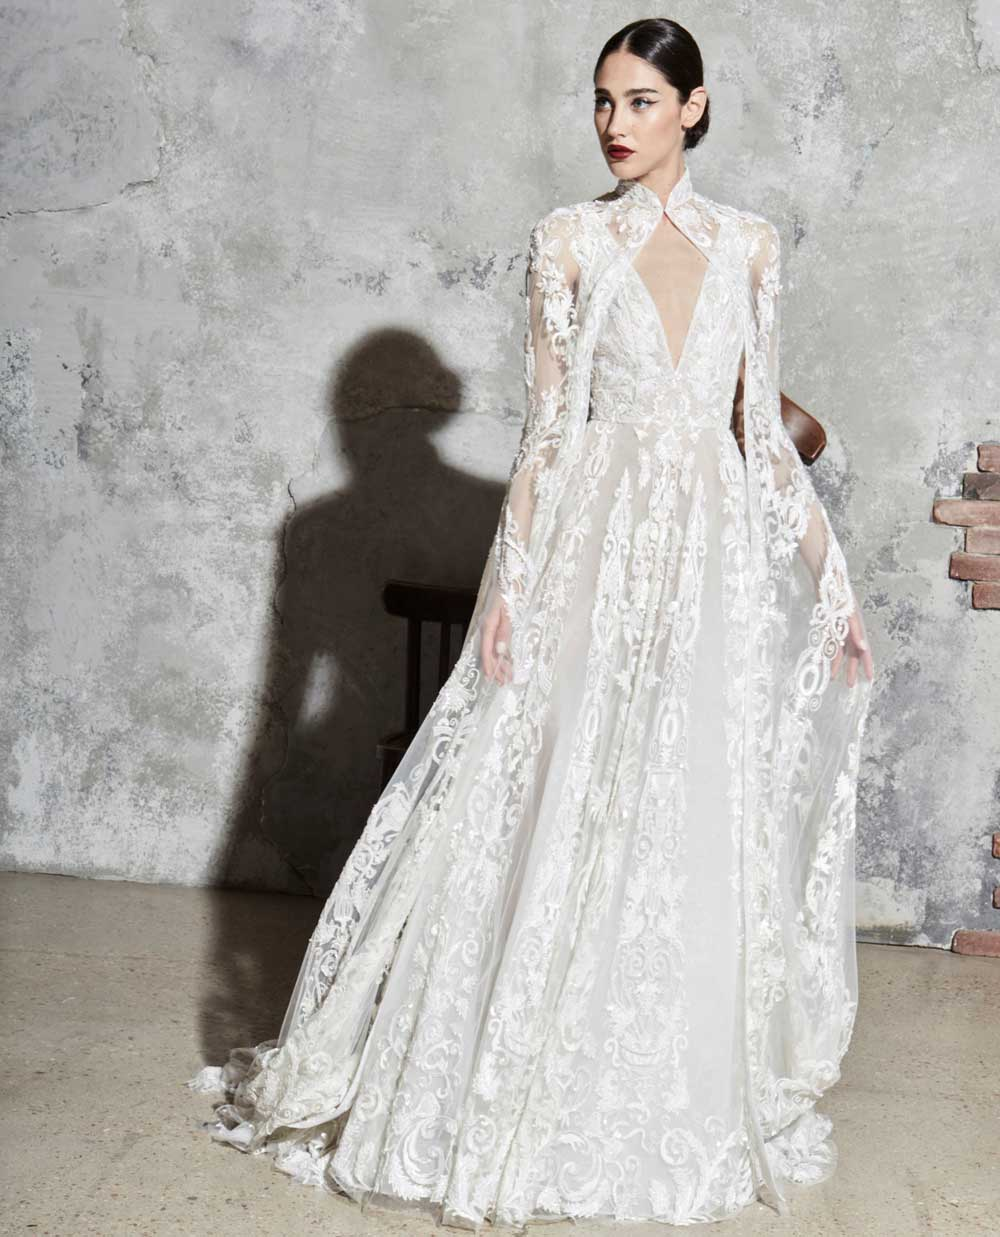 Vestiti Da Sposa Zuhair Murad.Wedding Dresses 2020 New Trends Wedluxitaly